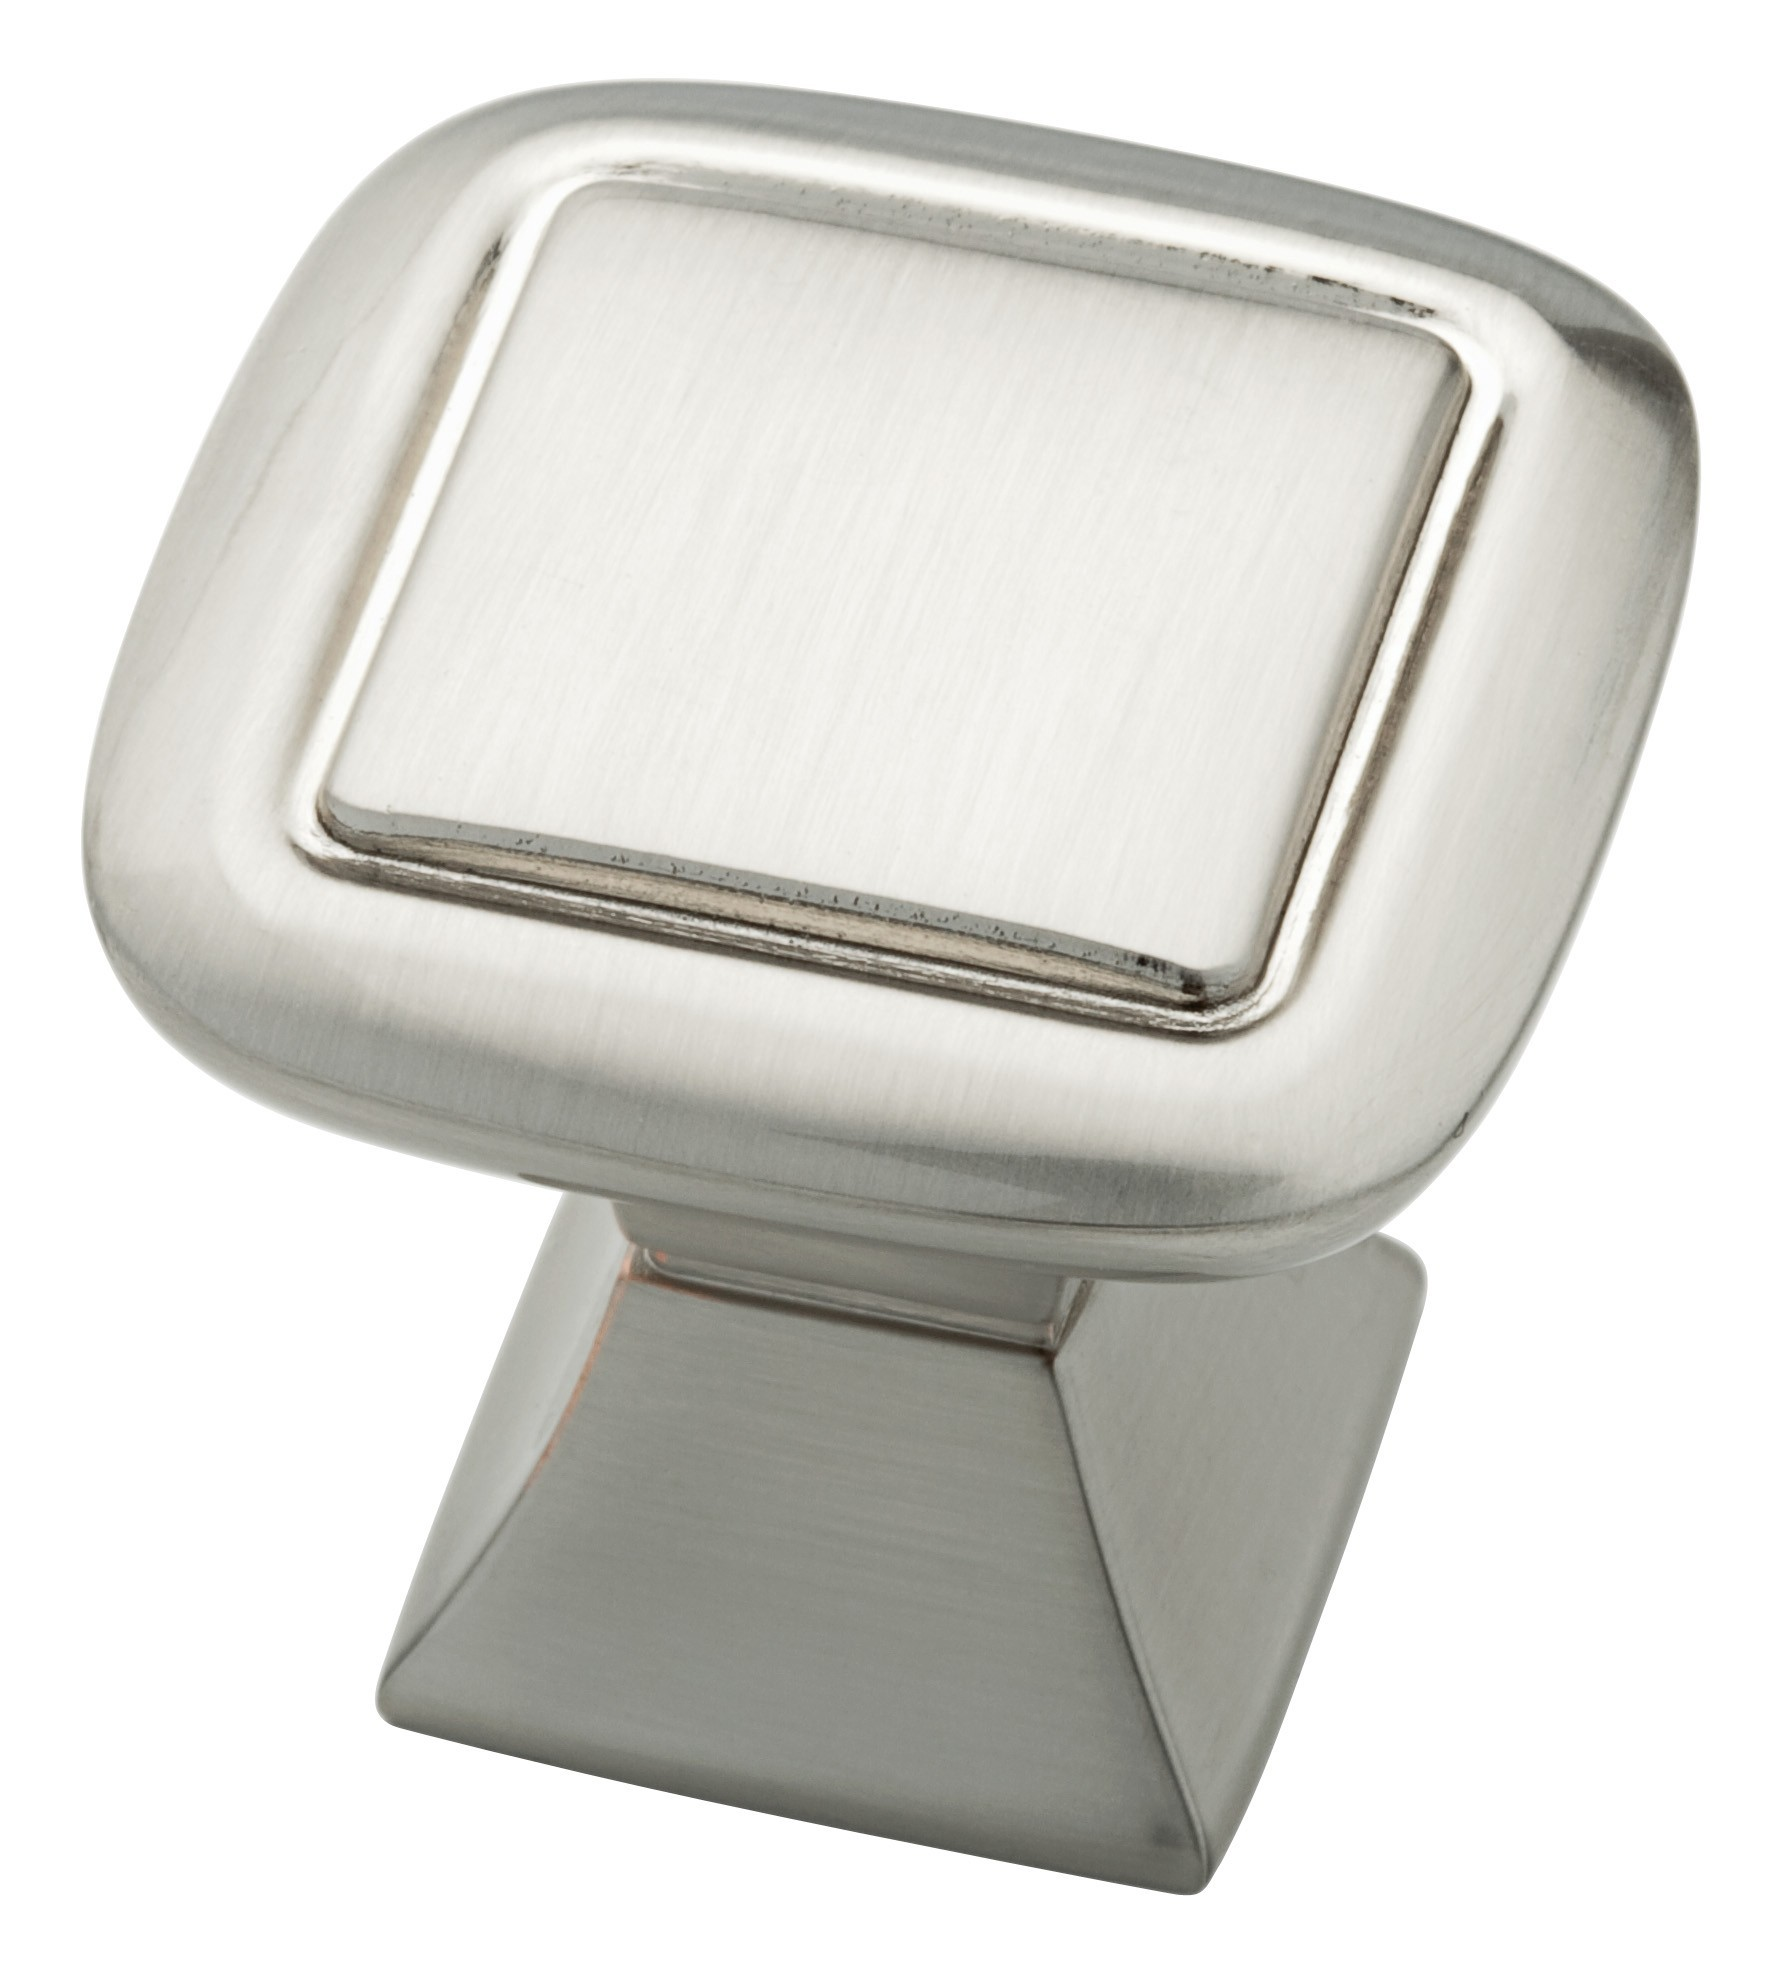 Liberty Hardware P20327-SN-C, 1-1/4 (32mm) Square Knob With Square Base, Zinc Die Cast Knob, Satin Nickel